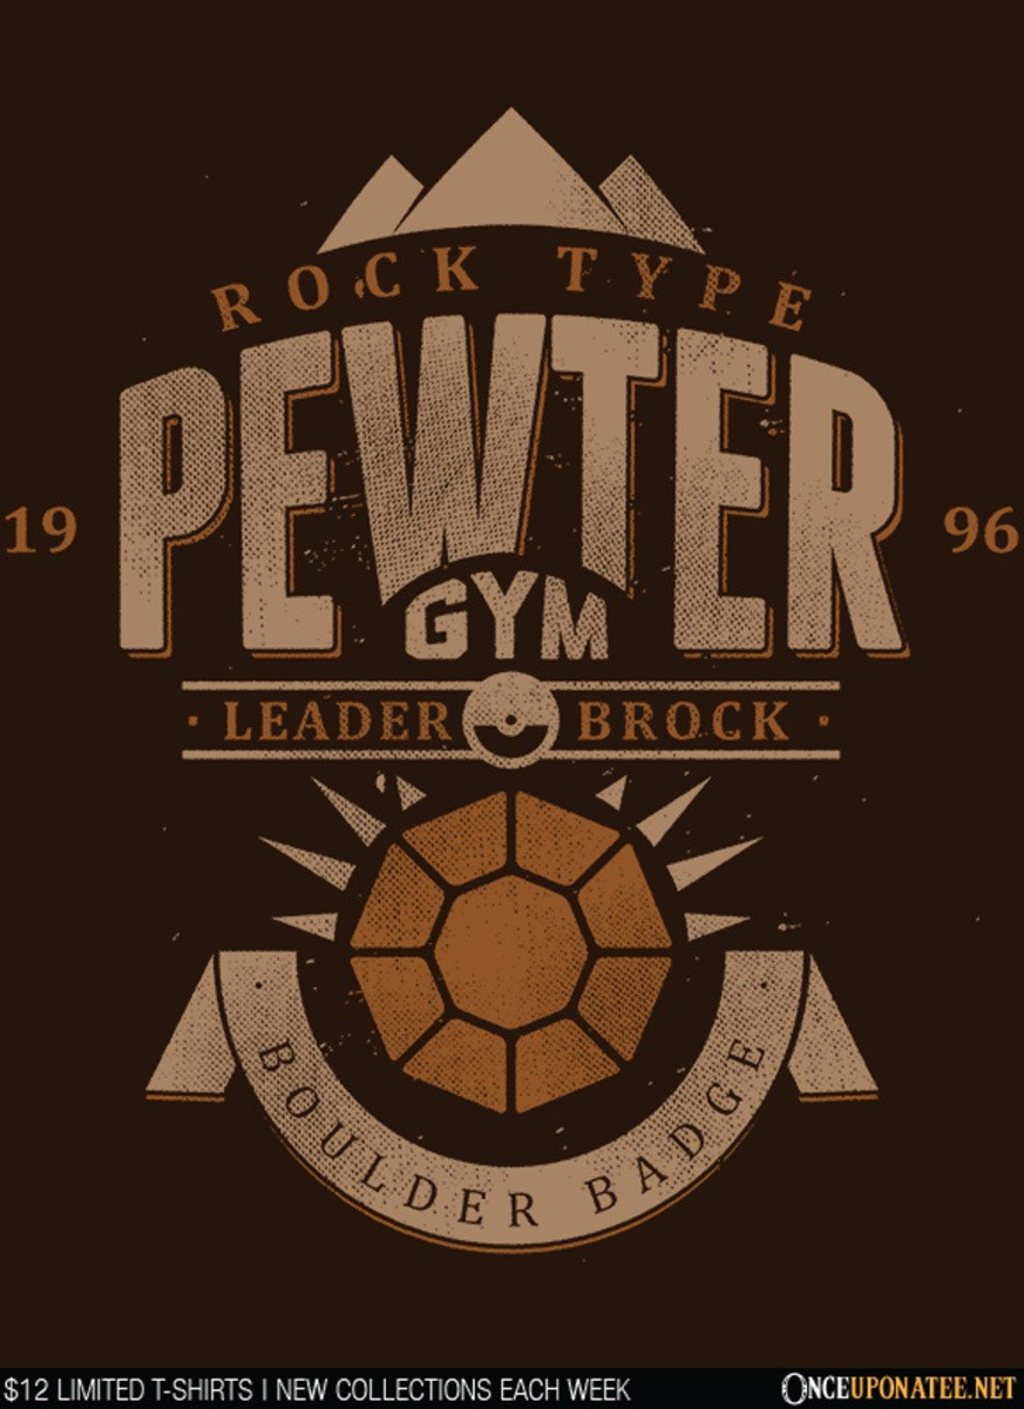 Once Upon a Tee: Pewter City Gym